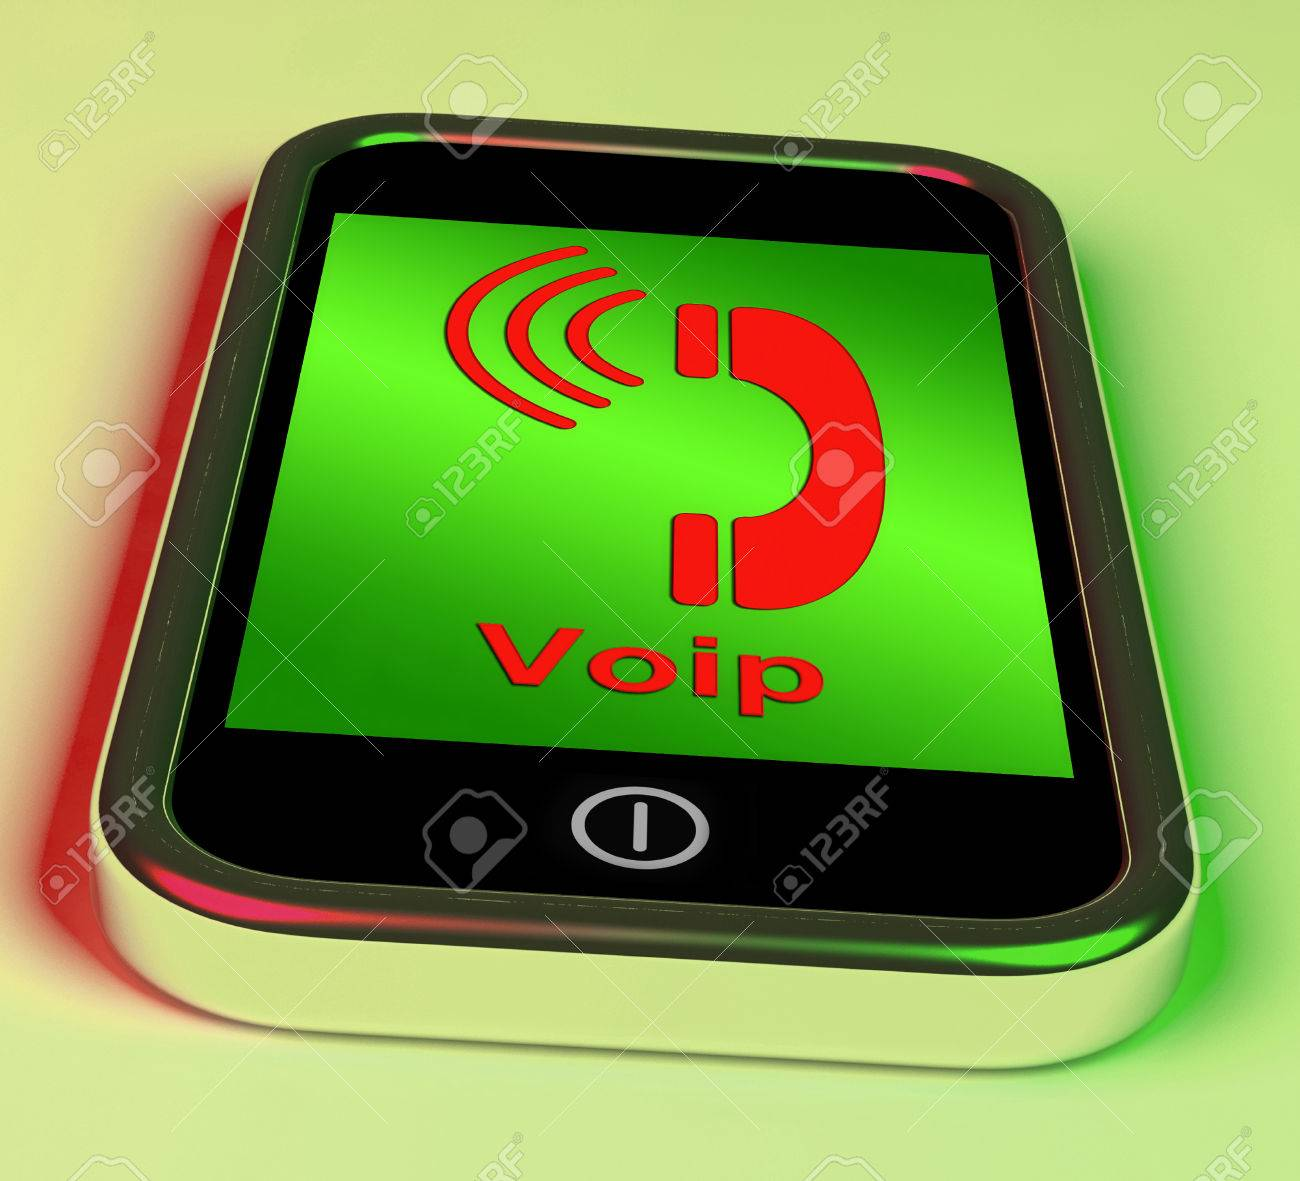 stock photo voip on phone showing voice over internet protocol or ip telephony